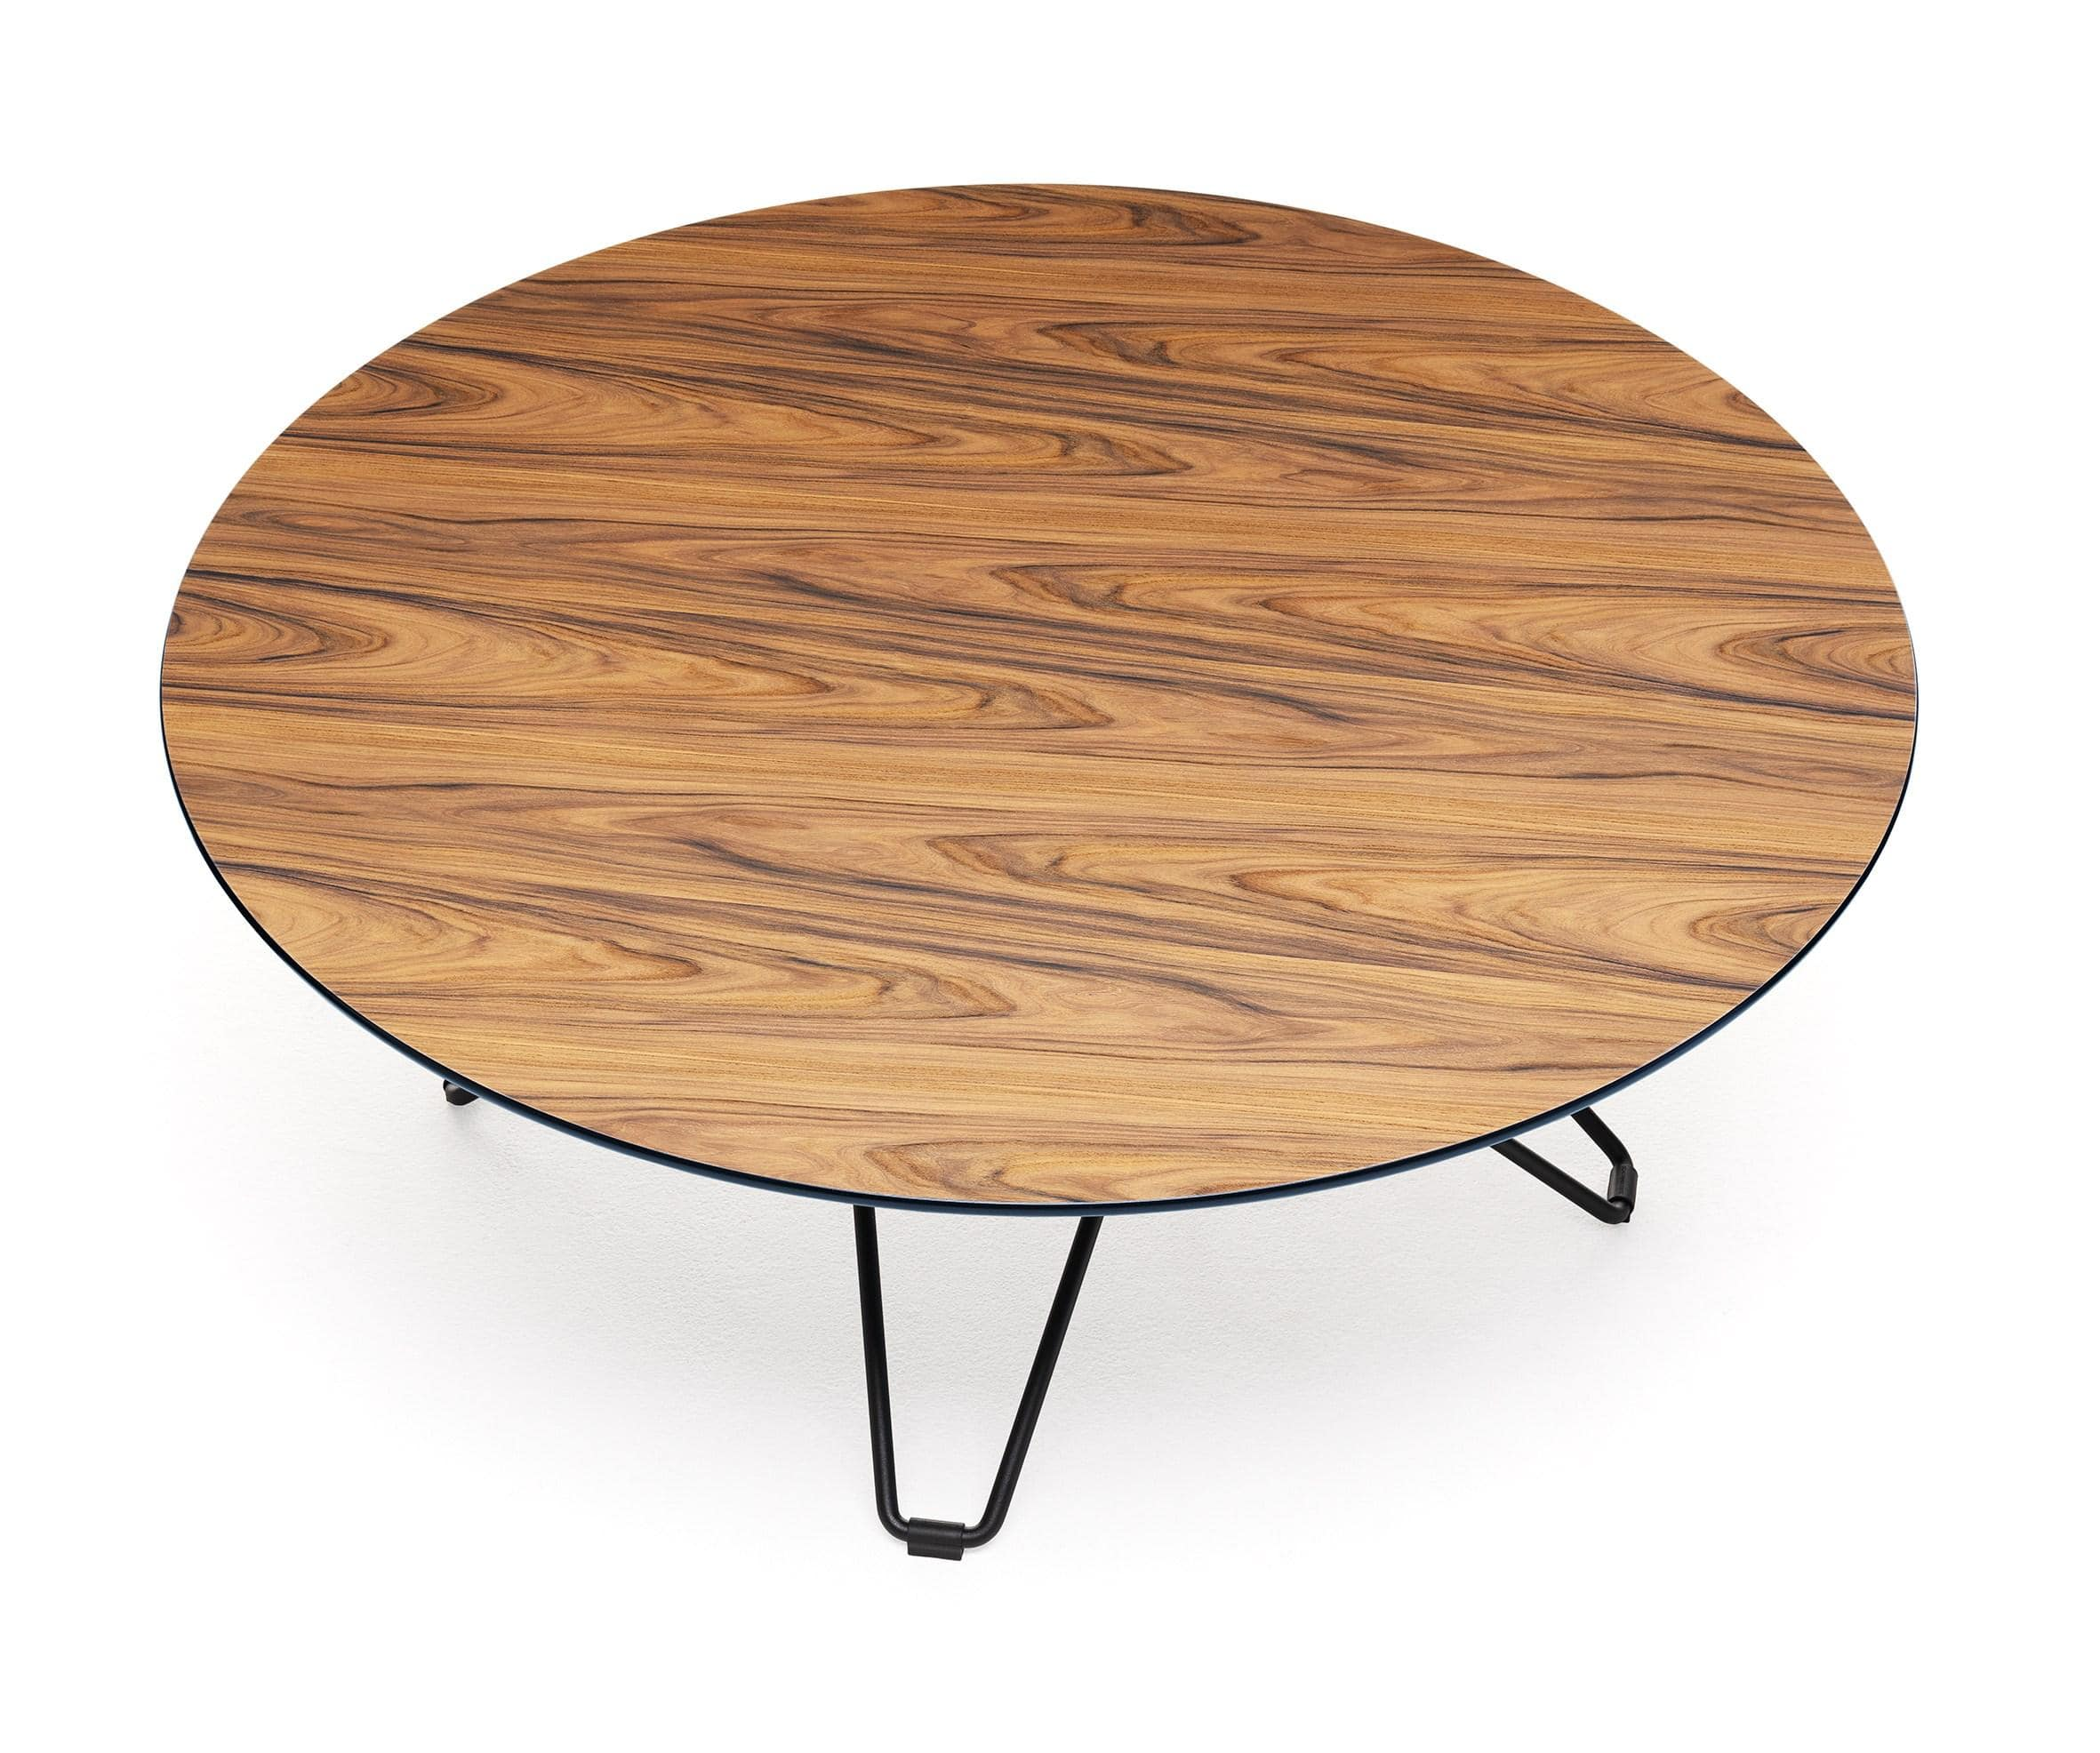 Classic Round Wood Table Tops